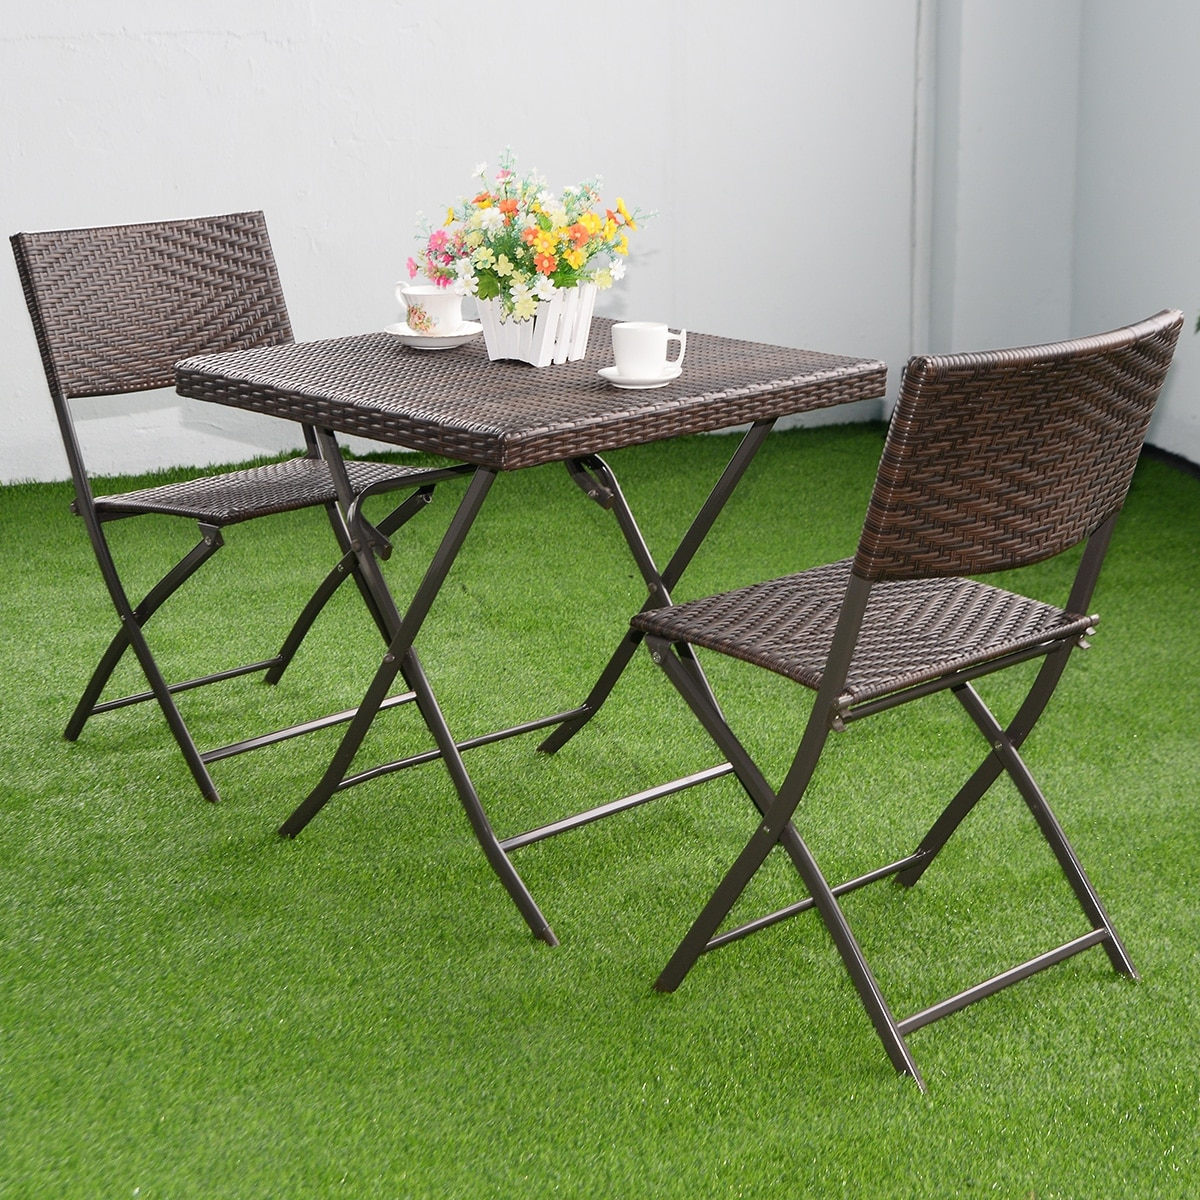 Shop Costway 3 PC Outdoor Folding Table Chair Furniture Set Rattan Wicker Bistro Patio Brown - Free Shipping Today - Overstock - 16339822 & Shop Costway 3 PC Outdoor Folding Table Chair Furniture Set Rattan ...